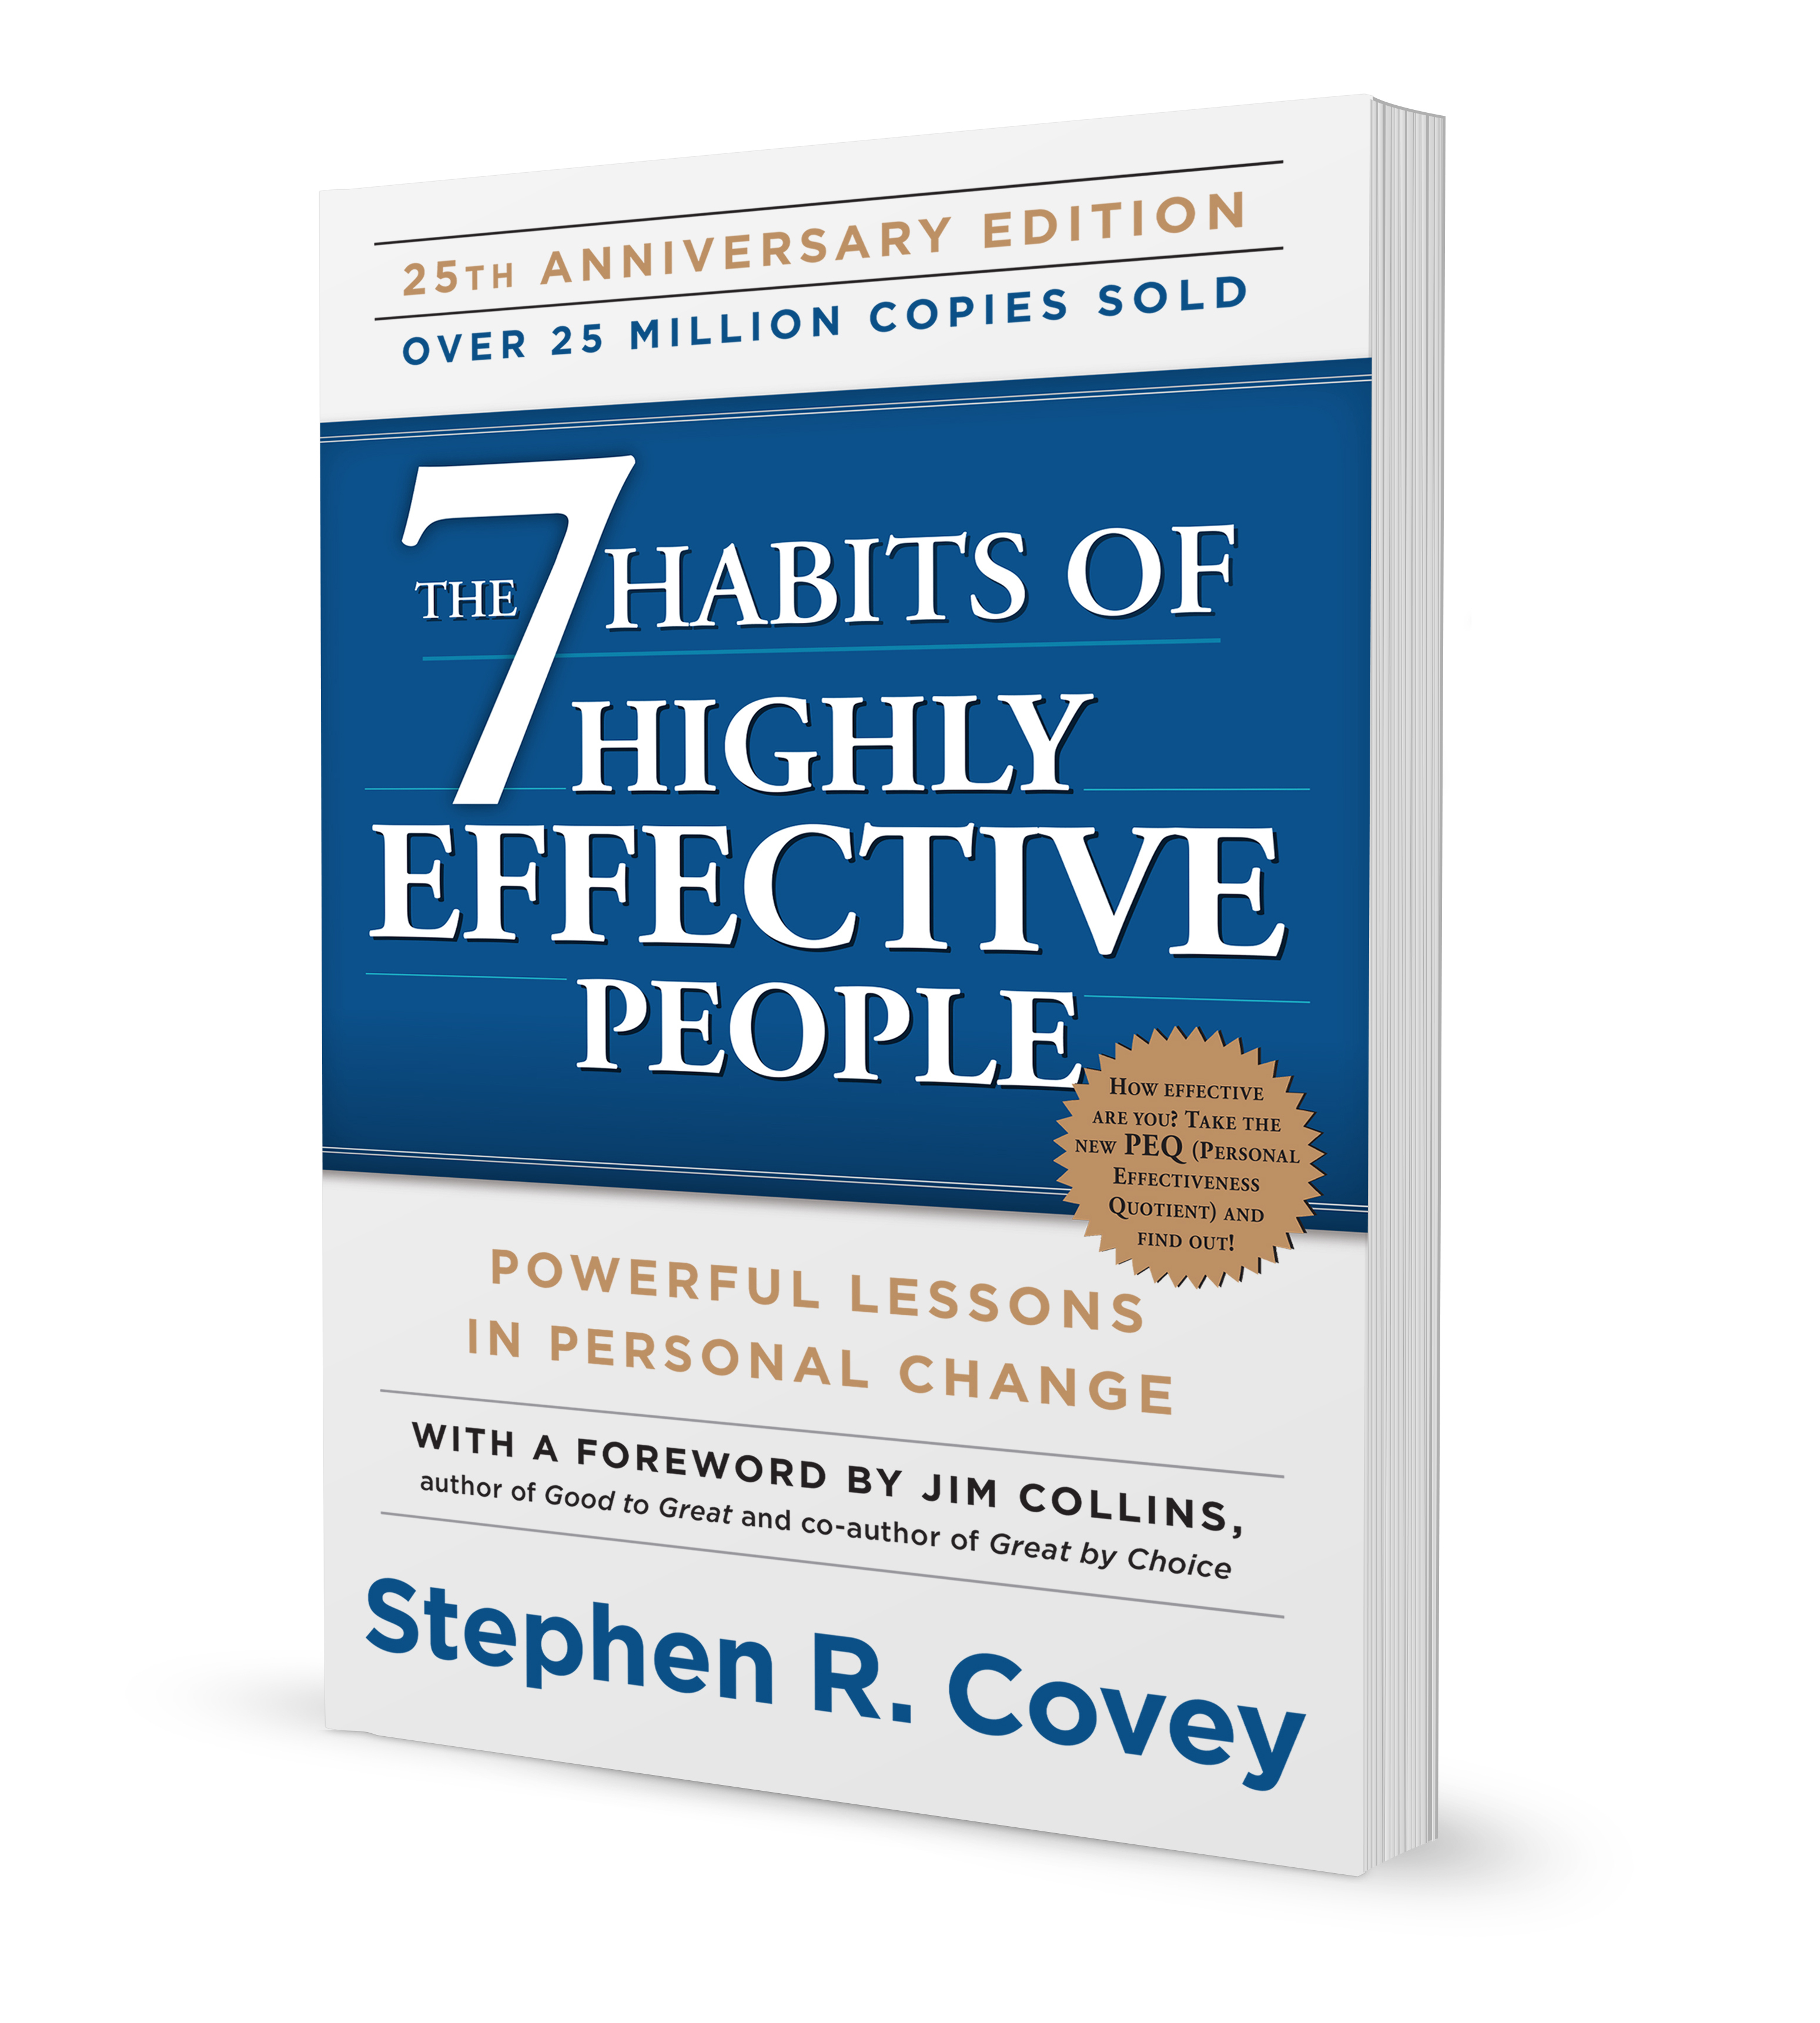 7 habits of highly effective people When stephen covey published his seminal book on personal productivity and leadership back in 1989, he had no idea what kind of impact it would create -- not just within the business community, but across industries and even international borders the 7 habits of highly effective people became his.